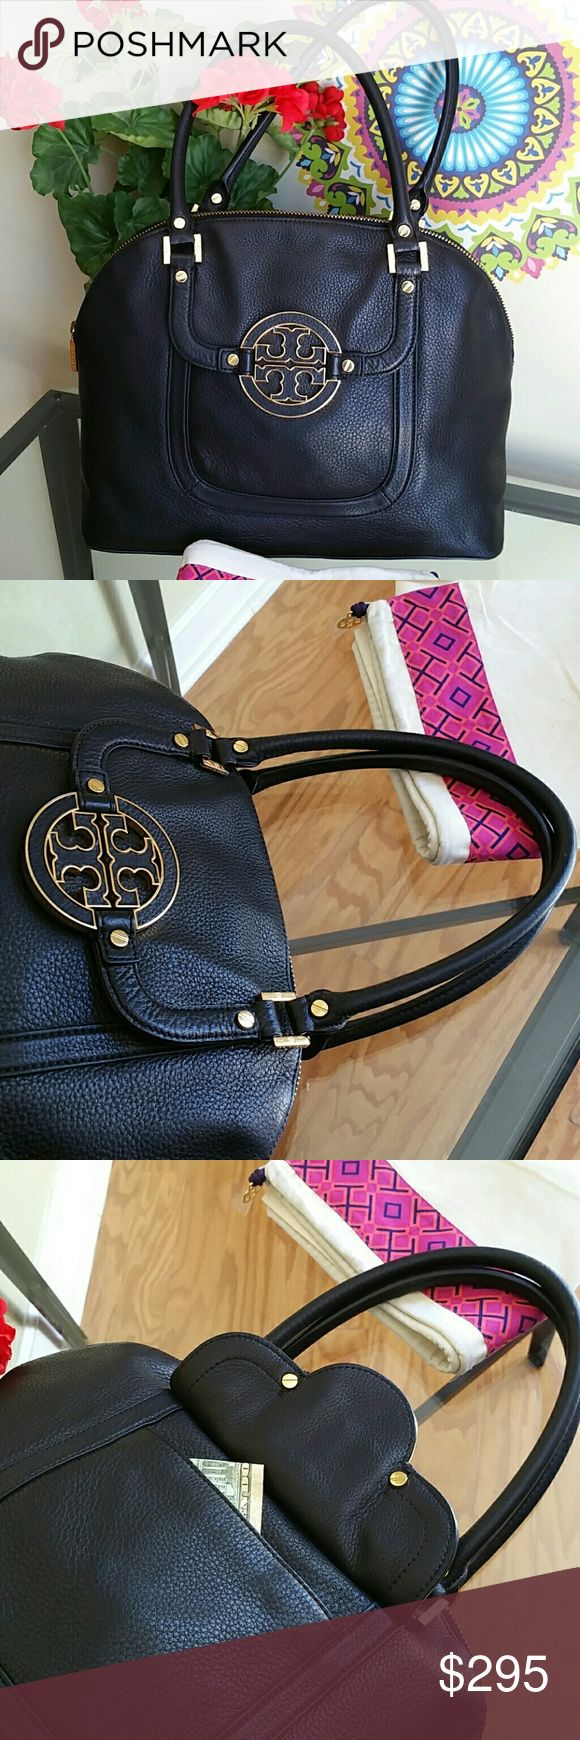 Tory Burch amanda bag Excellent condition...dimensions 15 in by 12 in by 5.5 in Tory Burch Bags